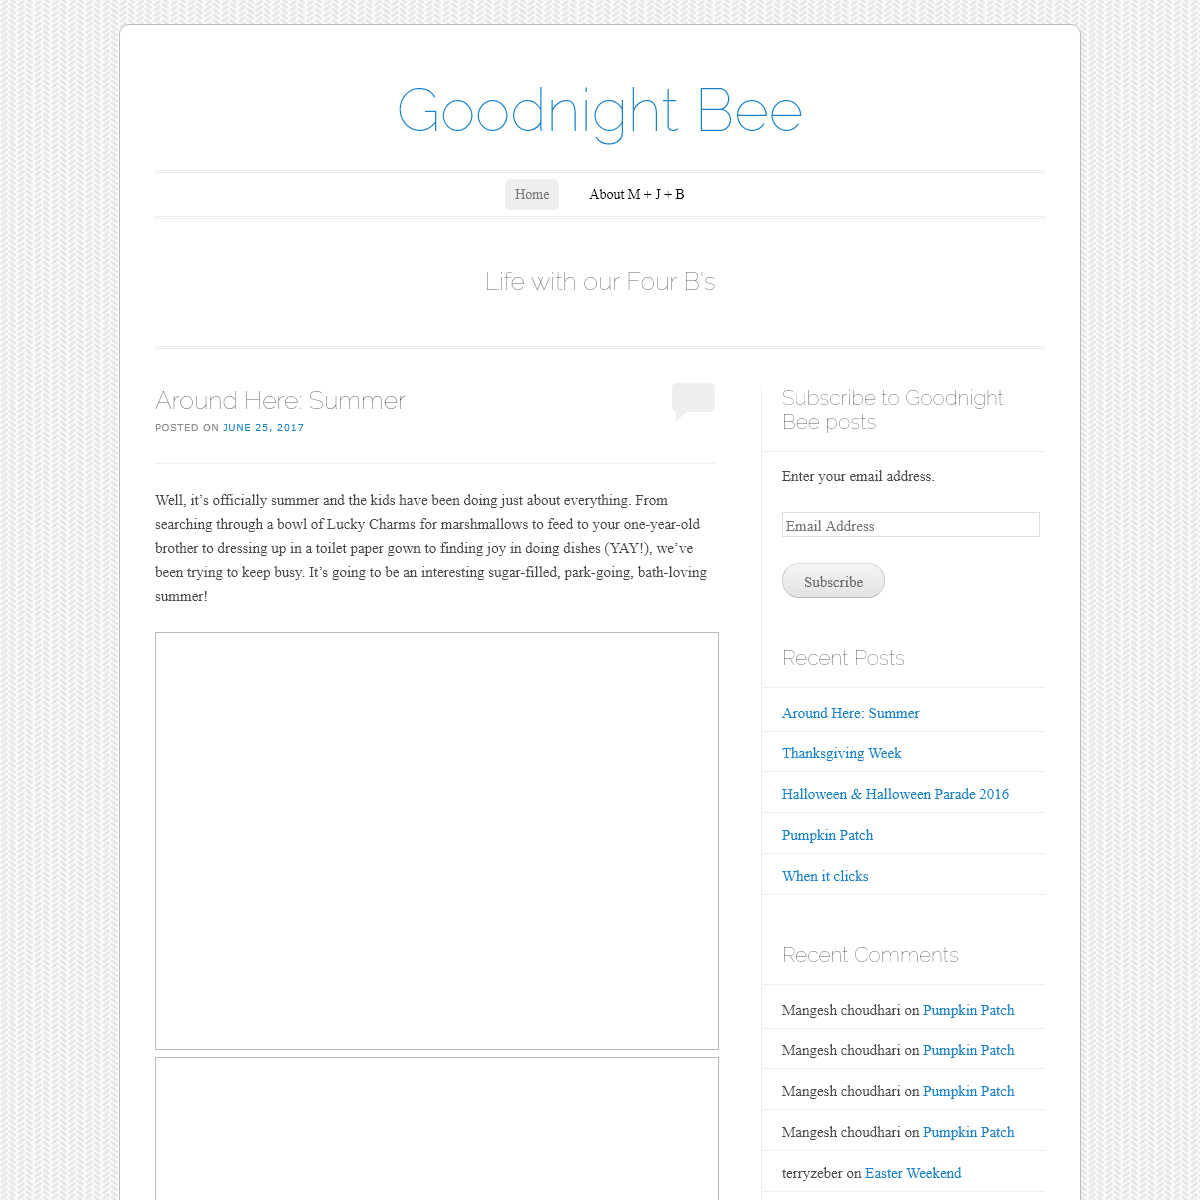 Goodnight Bee - Life with our Four B`s